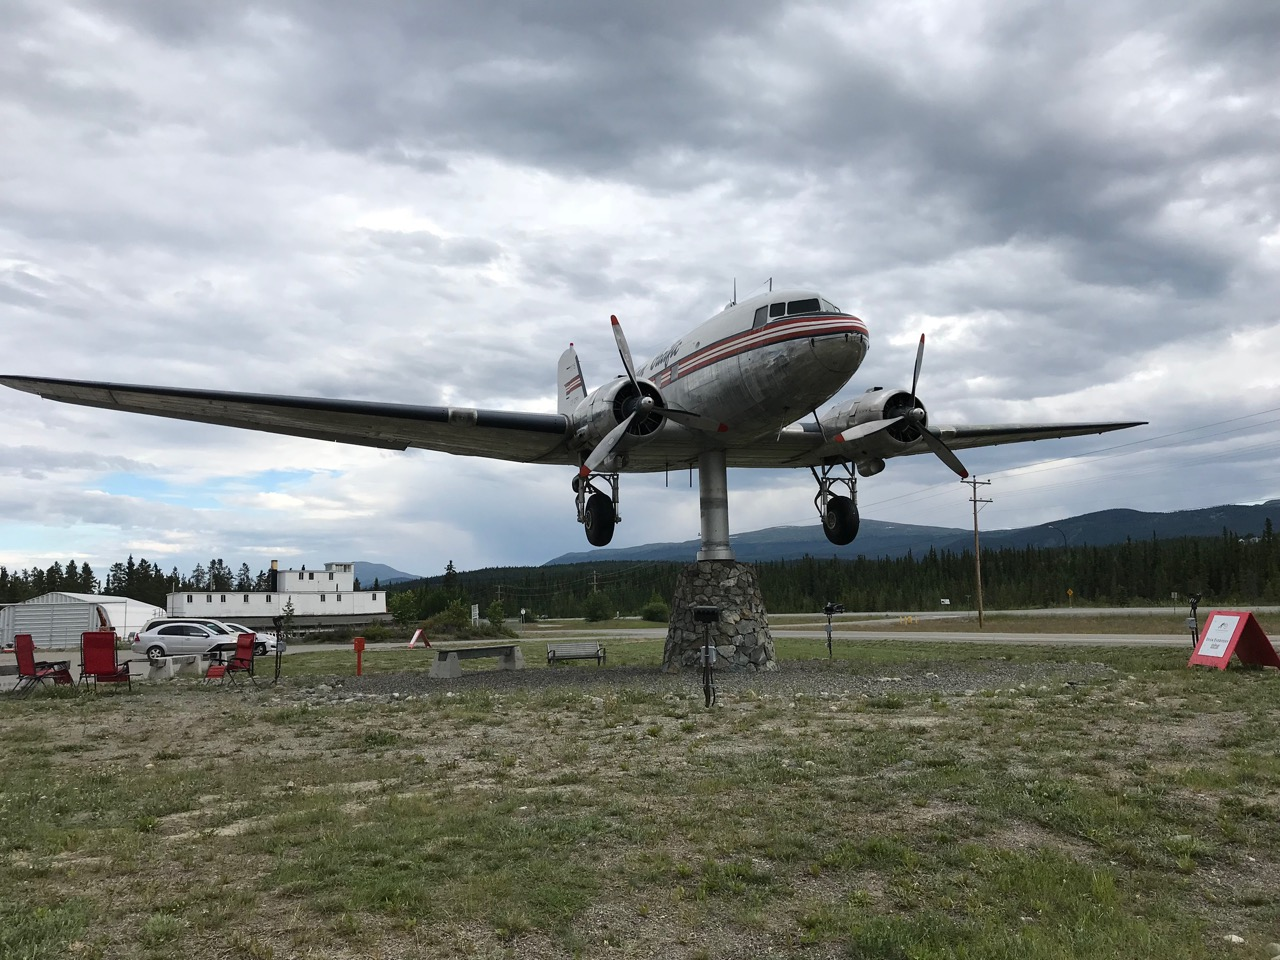 This retired DC-3 commercial plane used to fly across the North, and now serves as one big weathervane.